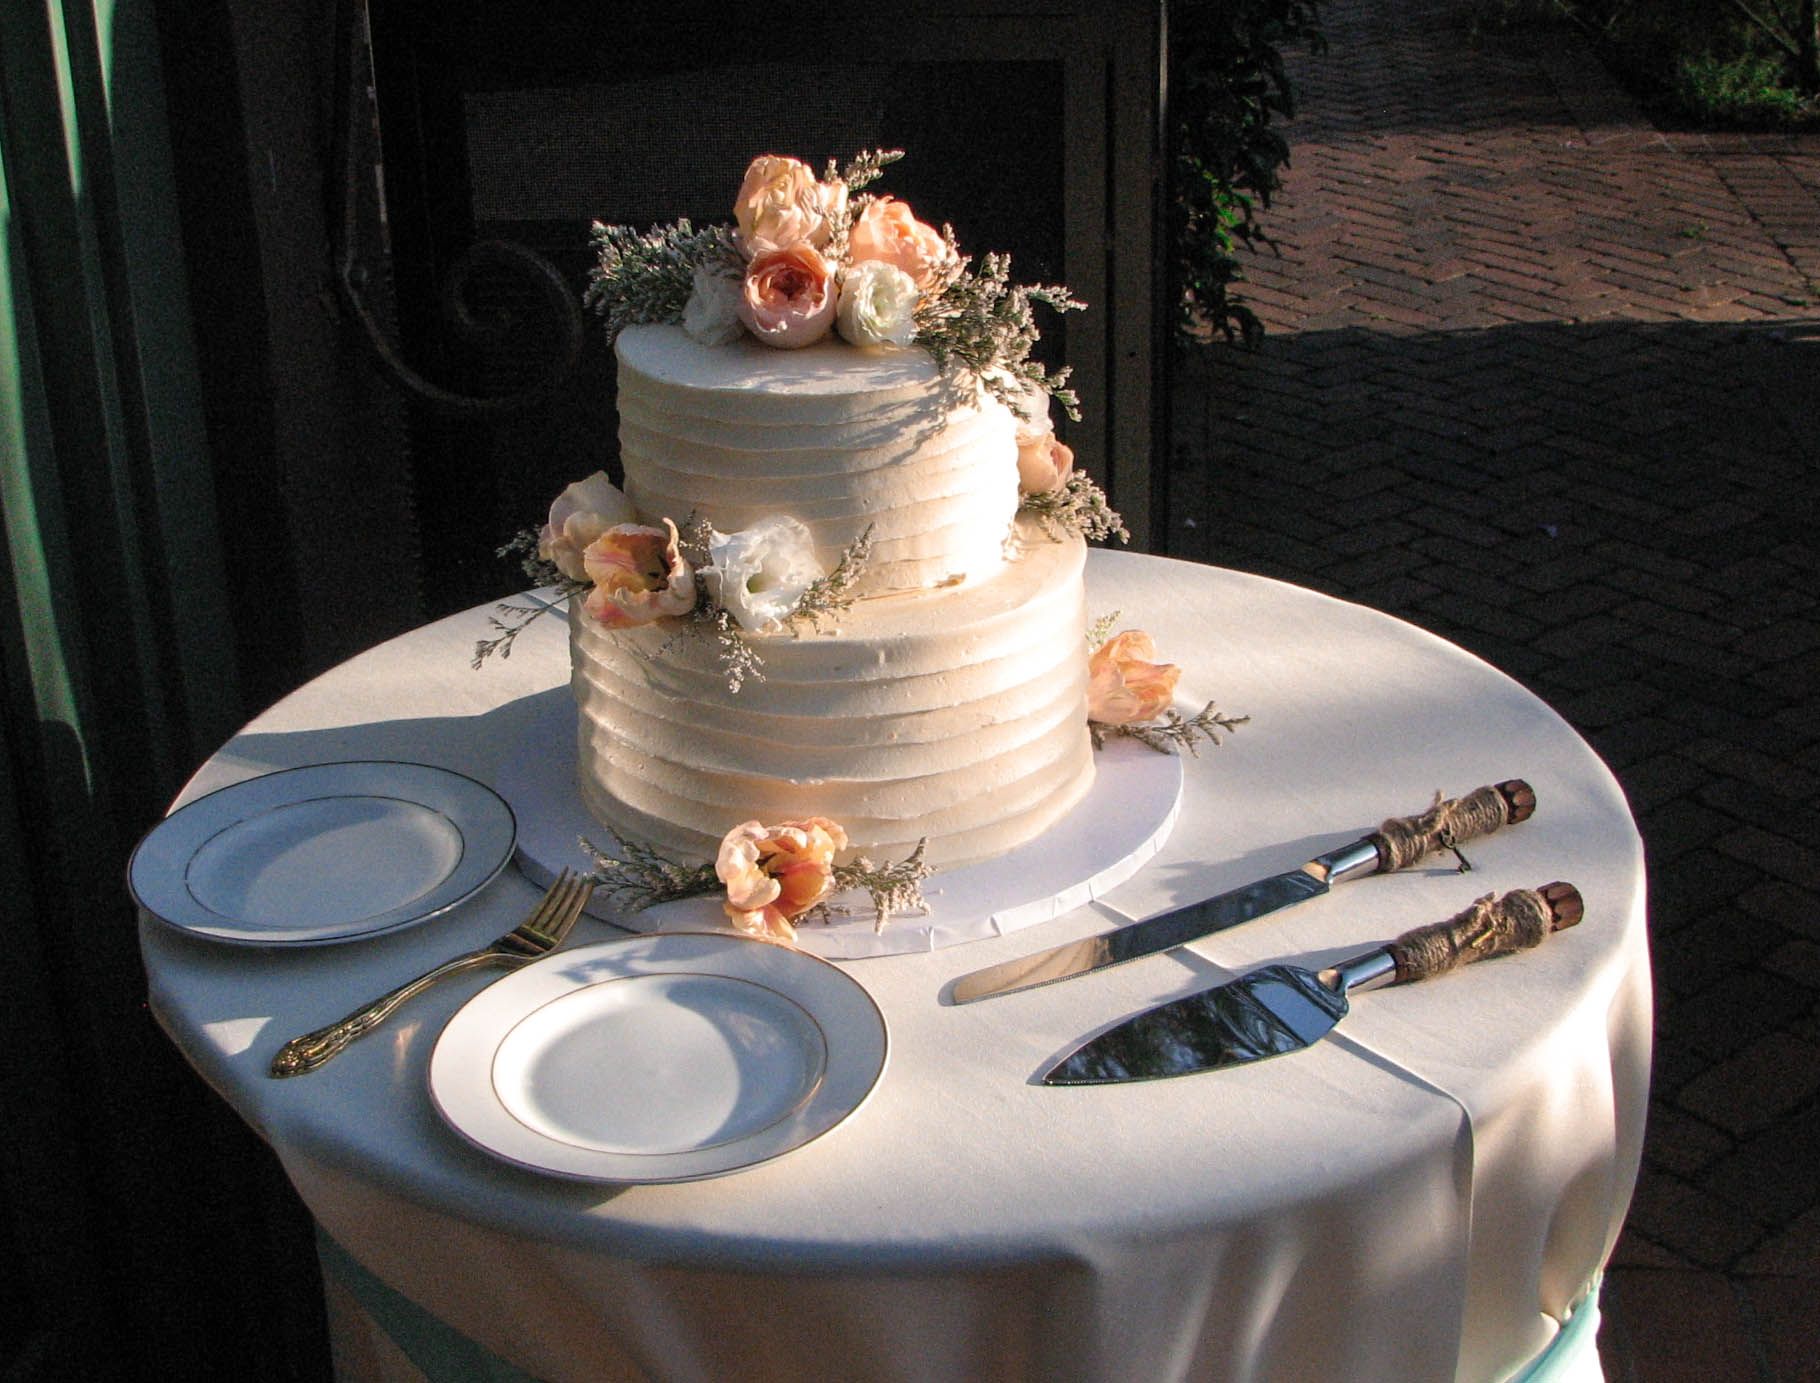 The wedding cake.